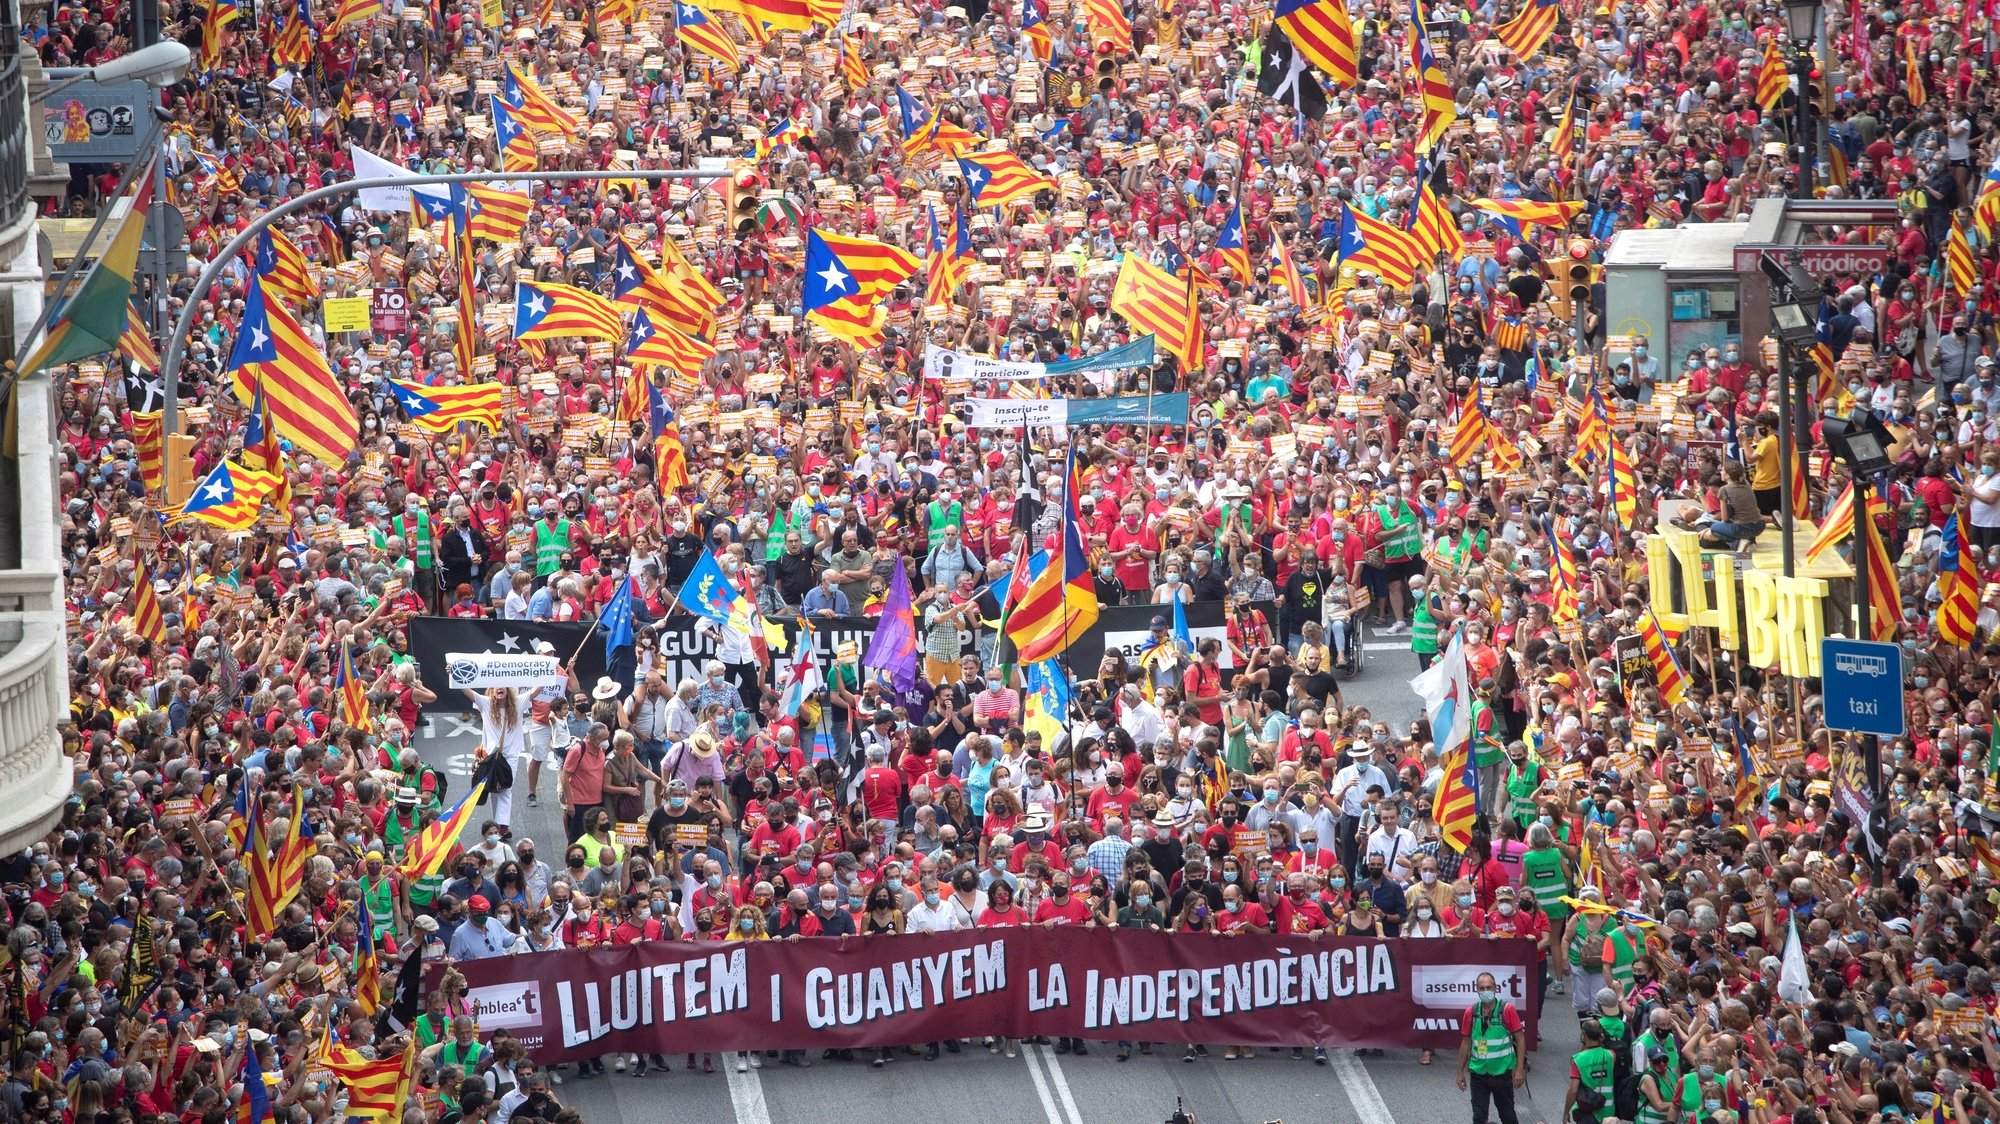 epa09461770 General view of the the demonstration organized by Catalan pro-independence group Asamblea Nacional Catalana (ANC) on occasion of the Day of Catalonia 'Diada', in Barcelona, Catalonia,Spain, 11 September 2021. The Diada is celebrated annually on 11 September and marks the fall of Barcelona during the War of the Spanish Succession in 1714.  EPA/Marta Perez